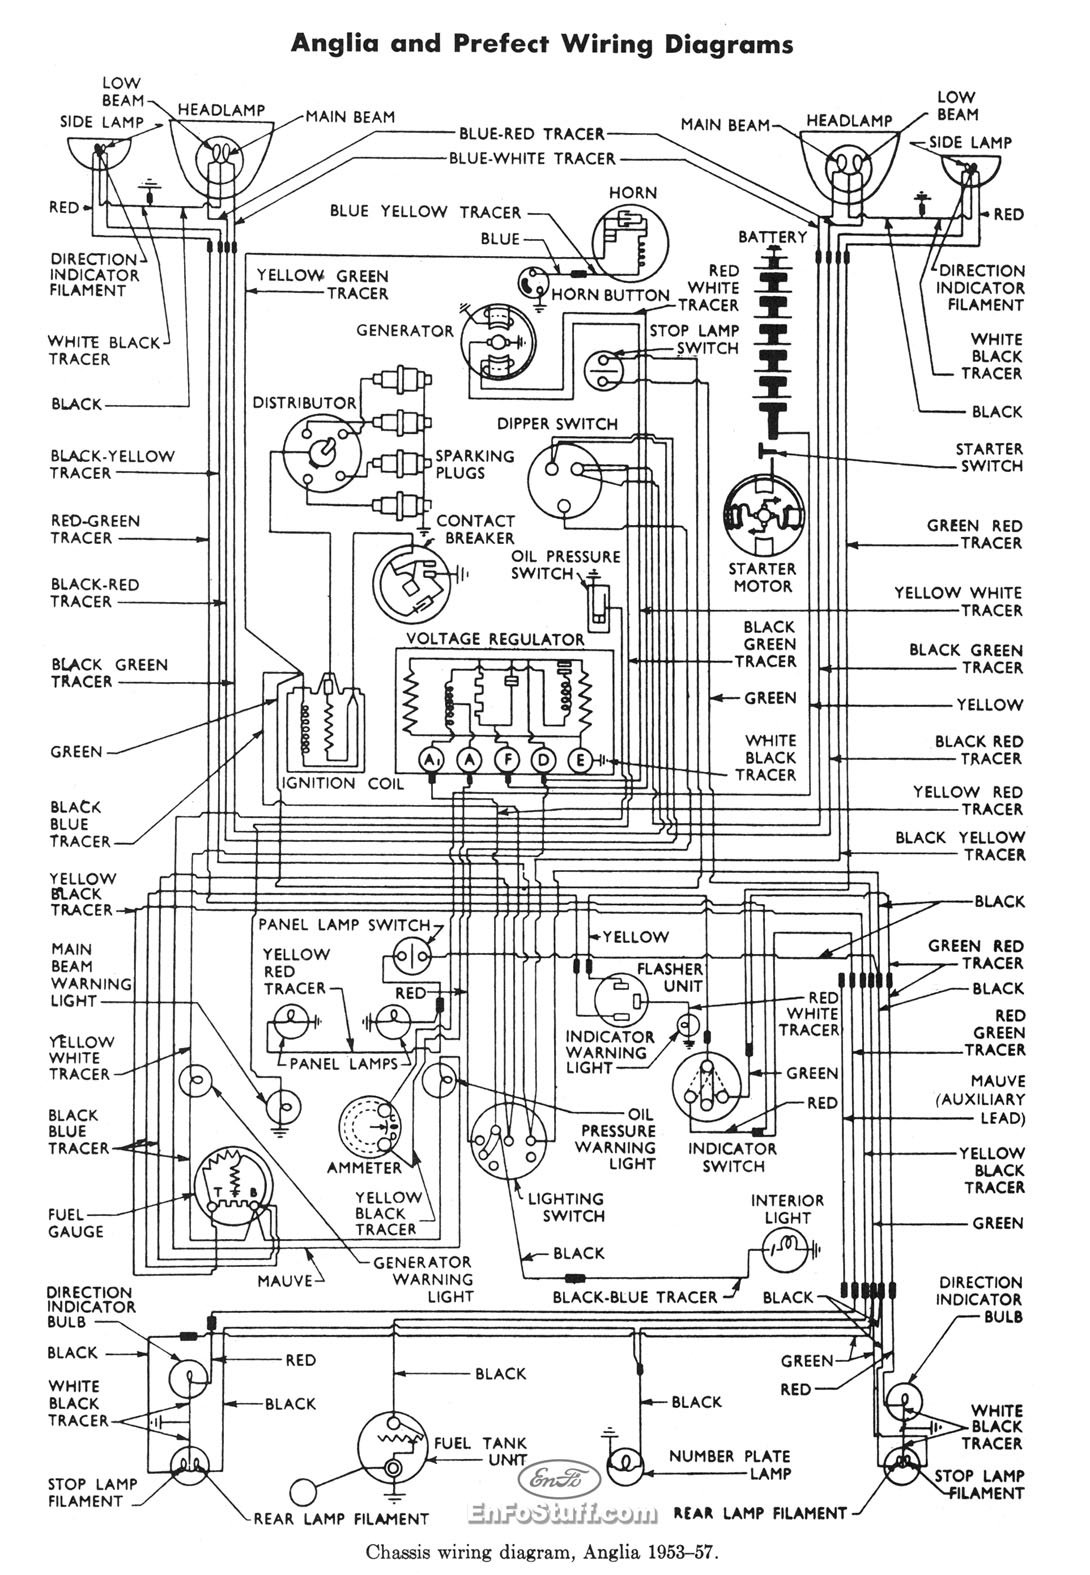 Willys Jeep Cut Away Photo in addition Modules likewise 1956 Willys Jeep Wiring Diagram as well Dodge M37 Wire Harness also HP PartList. on 1953 willys jeep wiring diagram